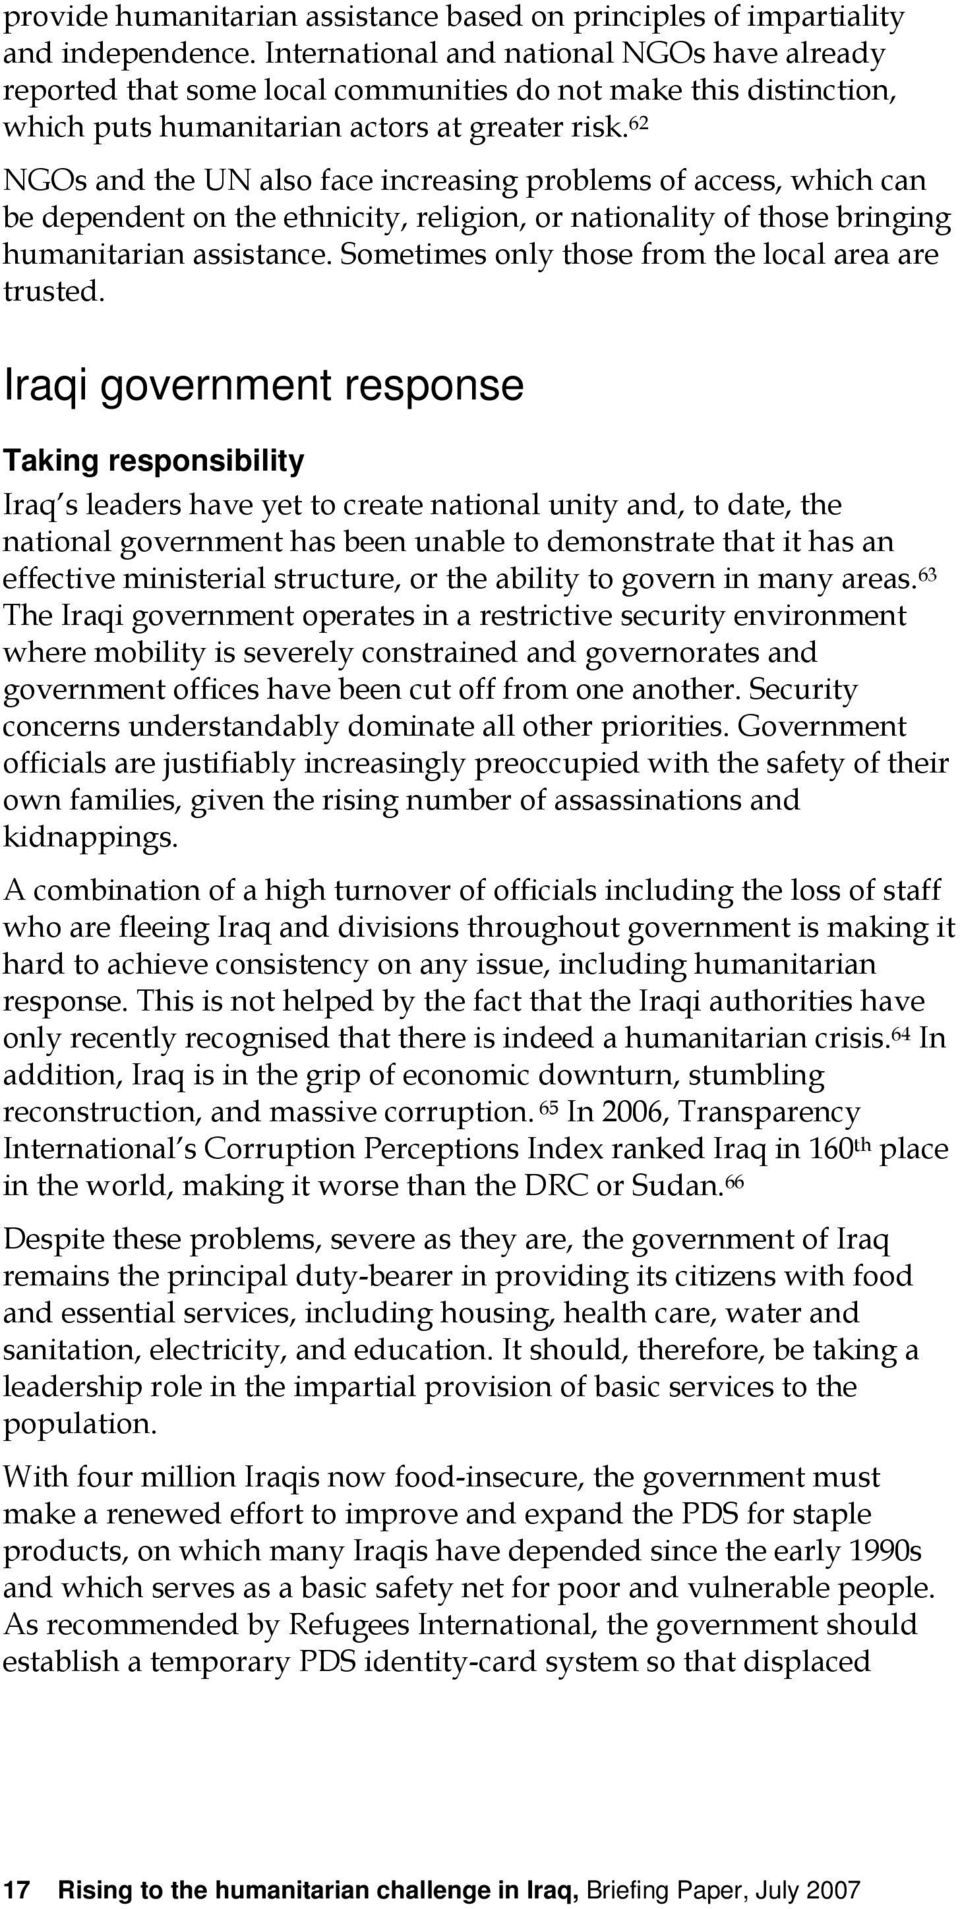 62 NGOs and the UN also face increasing problems of access, which can be dependent on the ethnicity, religion, or nationality of those bringing humanitarian assistance.